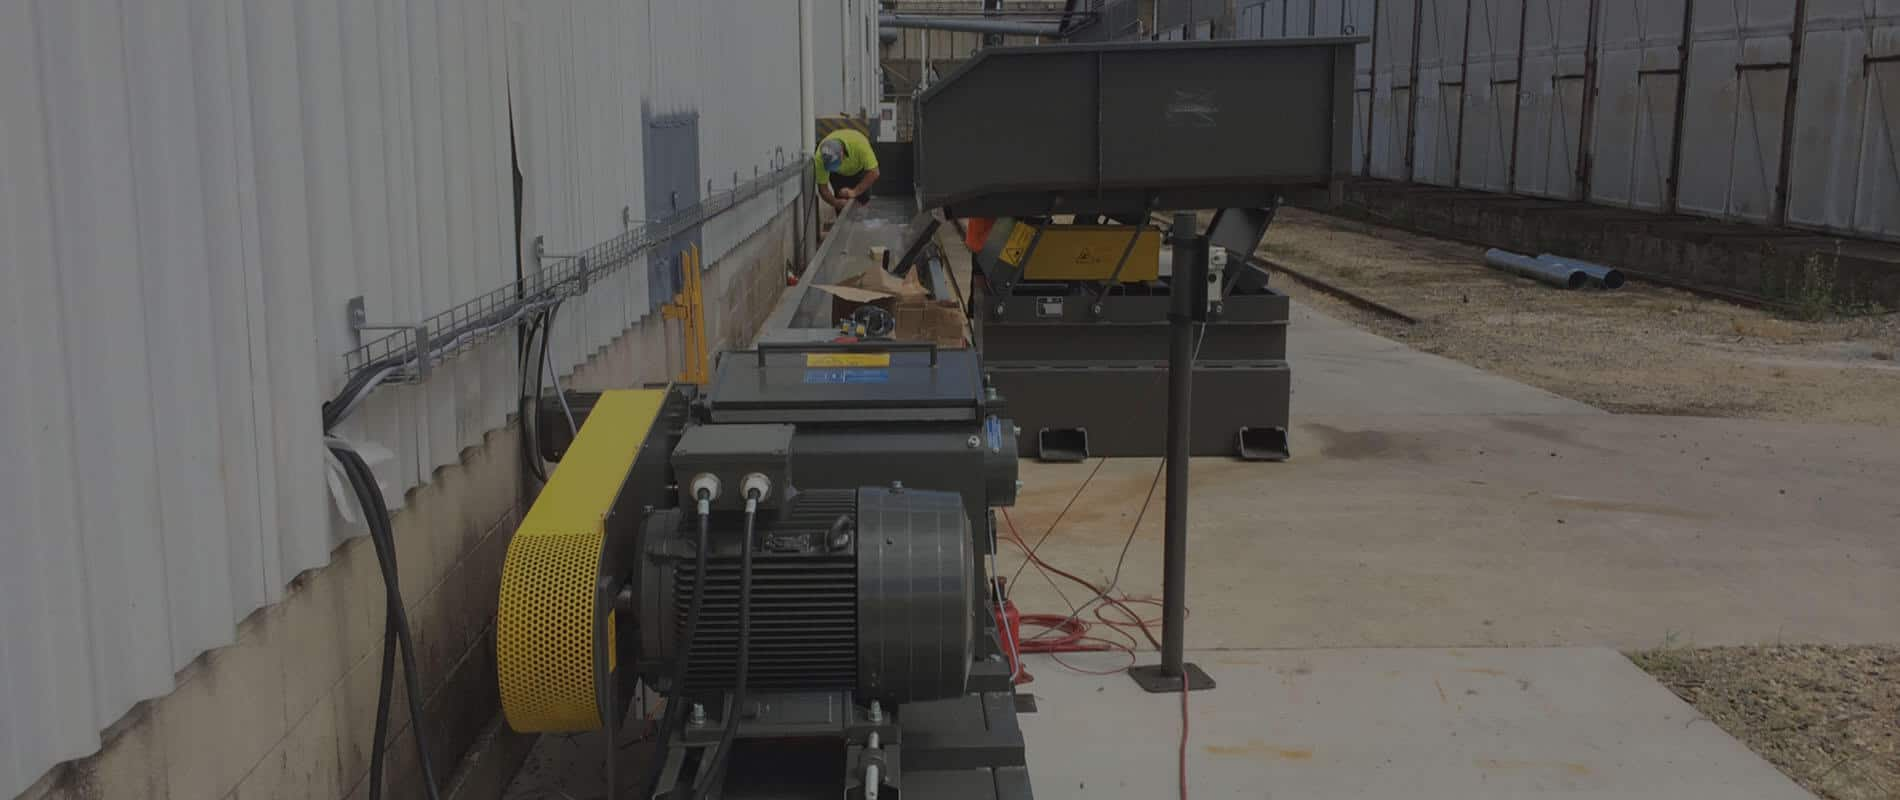 Scanhugger wood chipper and vibration conveyor